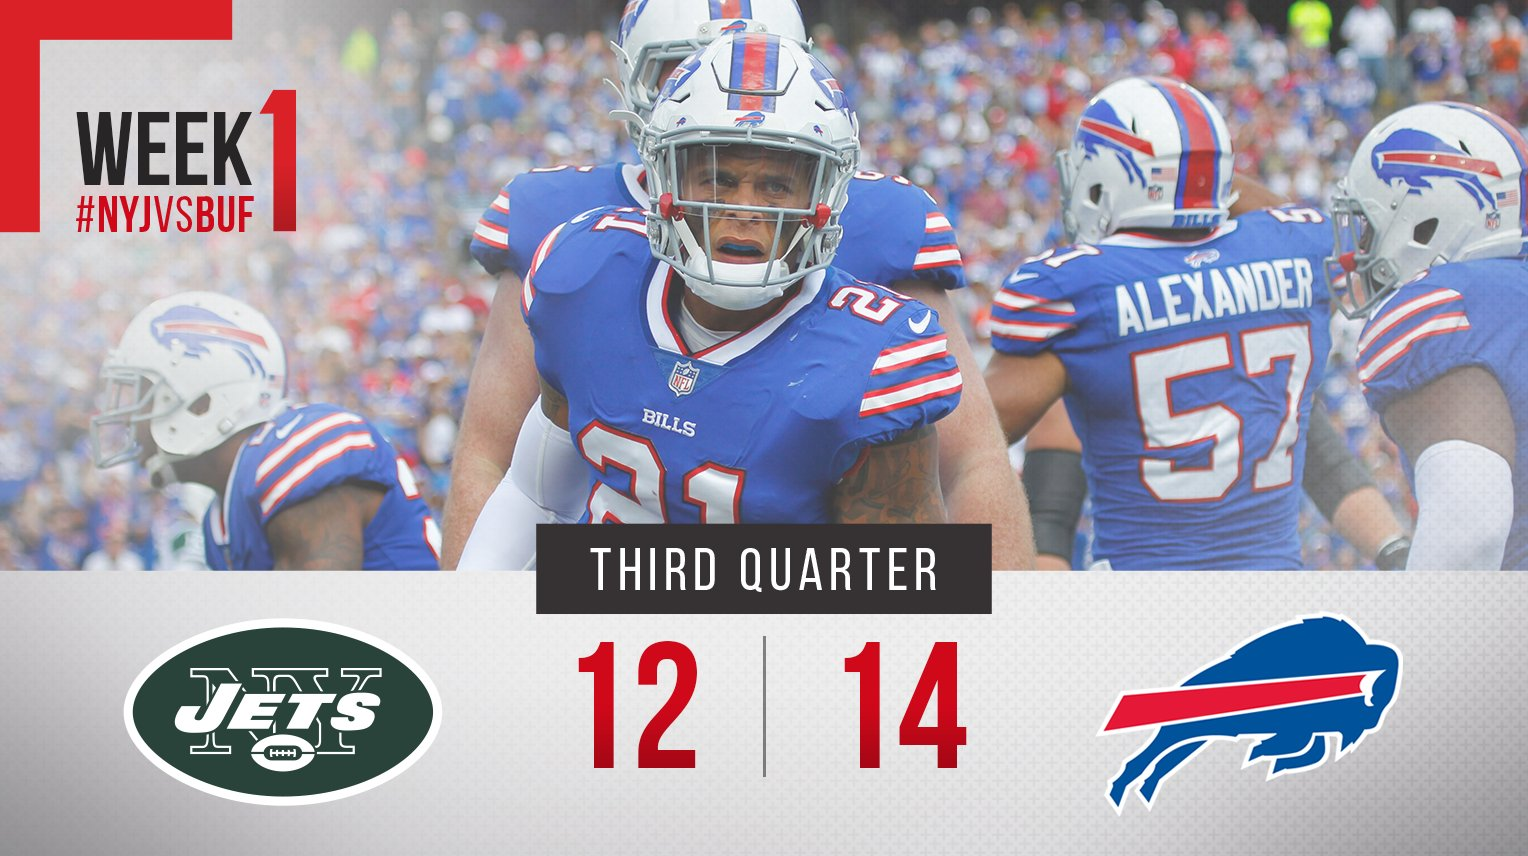 Let's finish this off. #NYJvsBUF https://t.co/PbMY6Rg94F